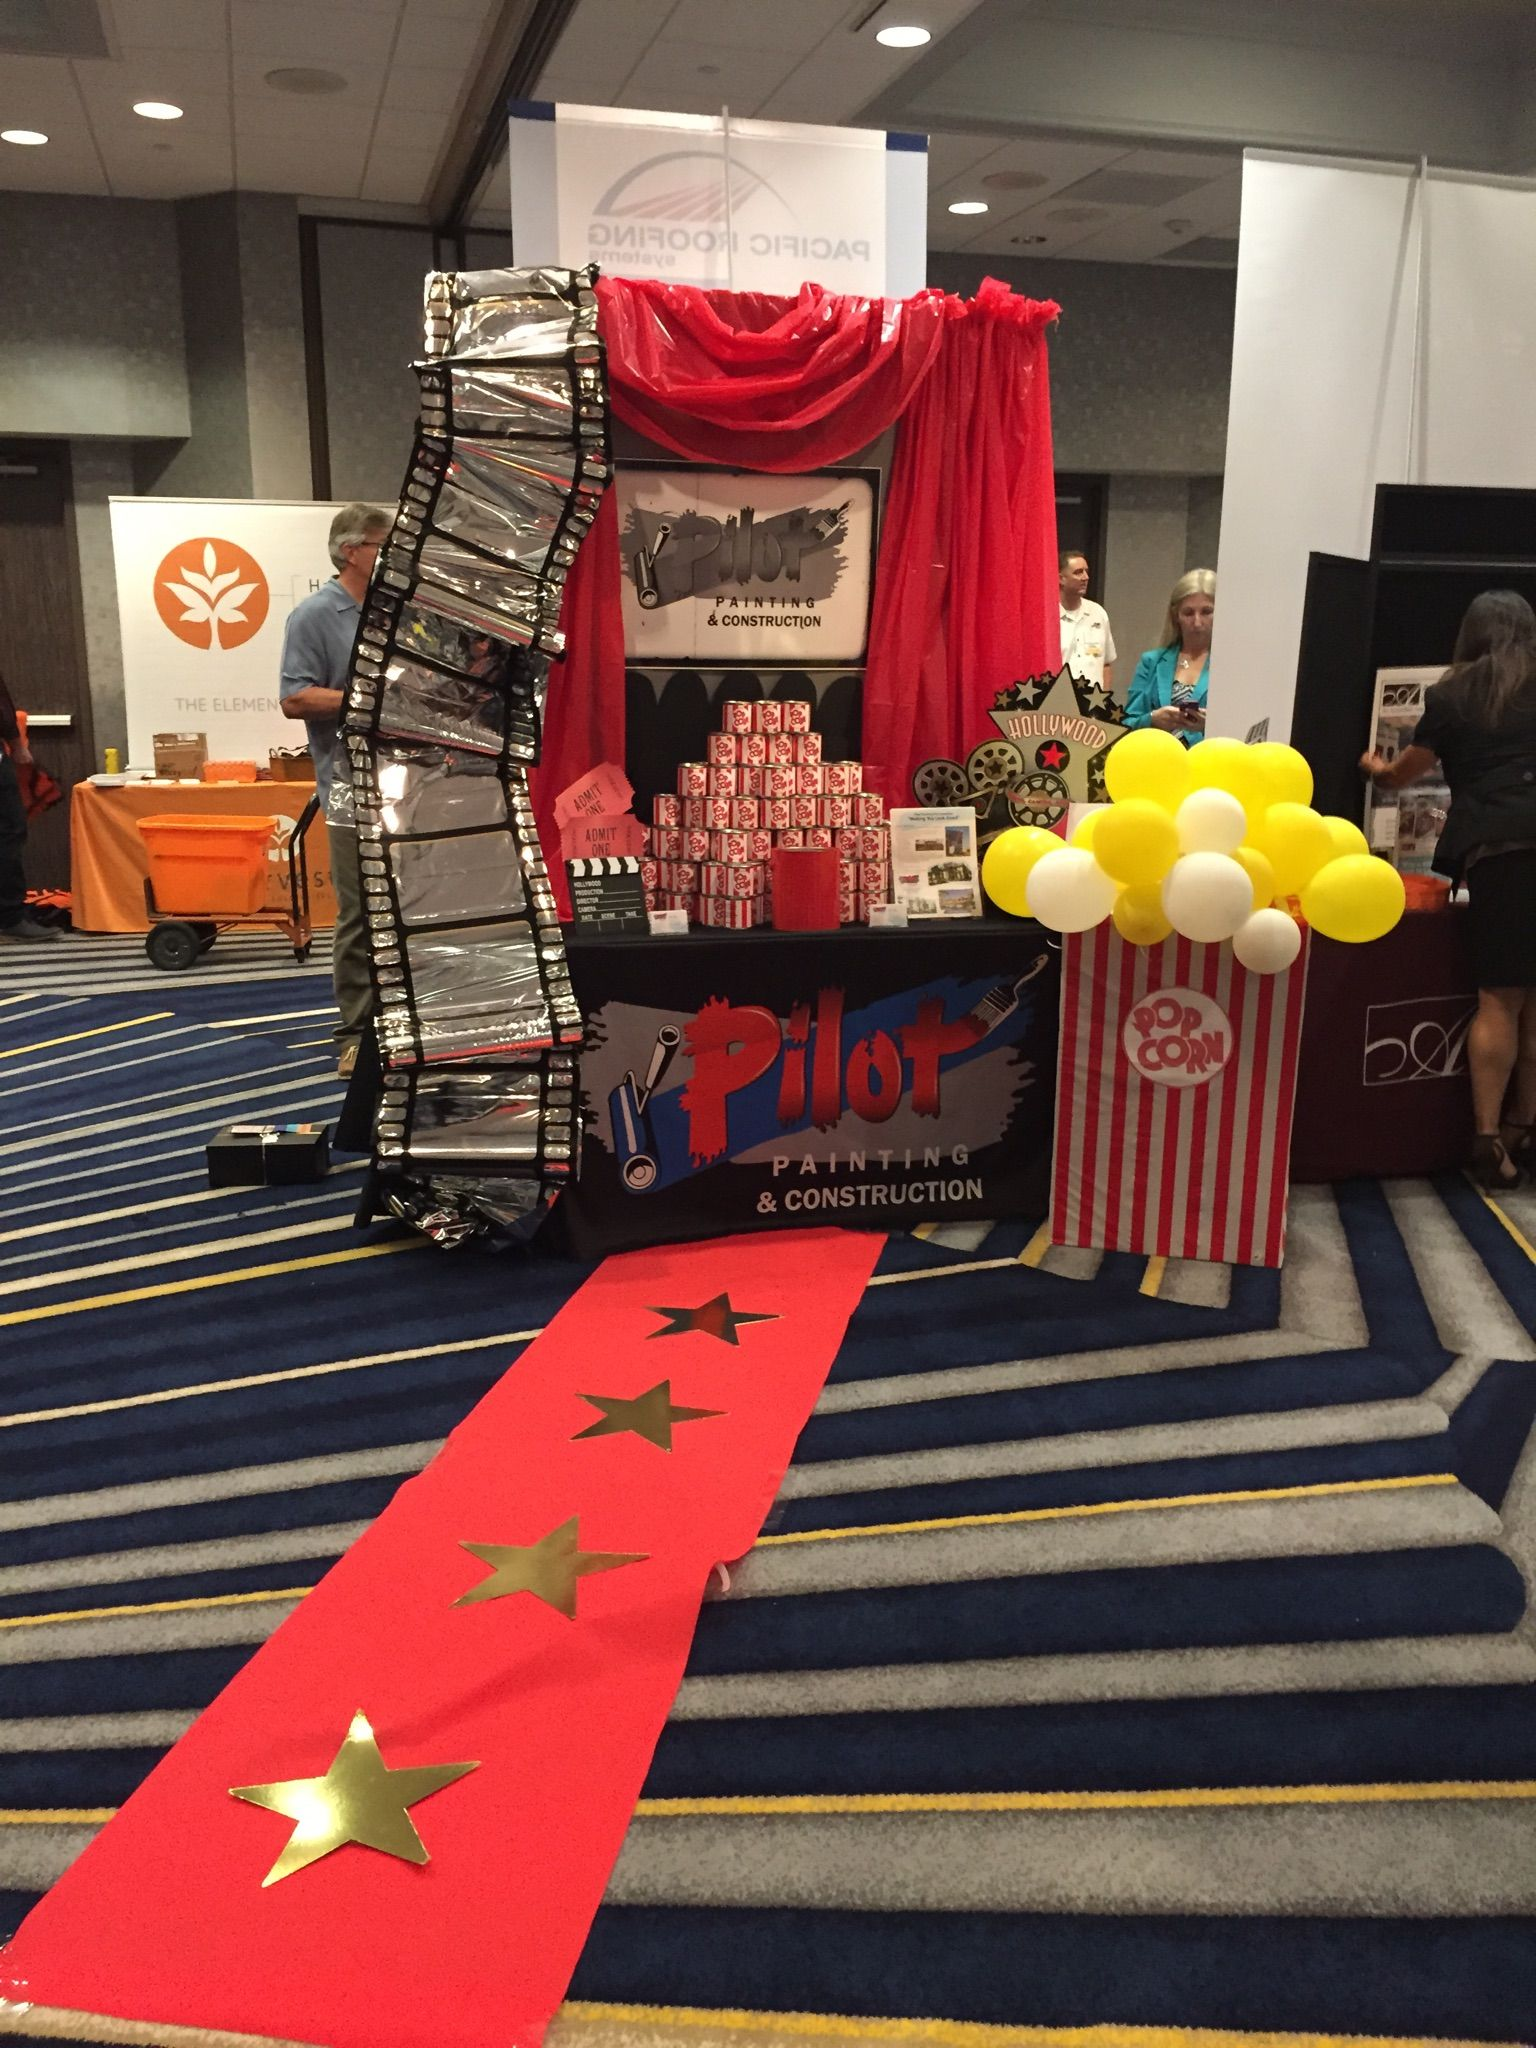 At the movies themed booth tradeshow boothideas